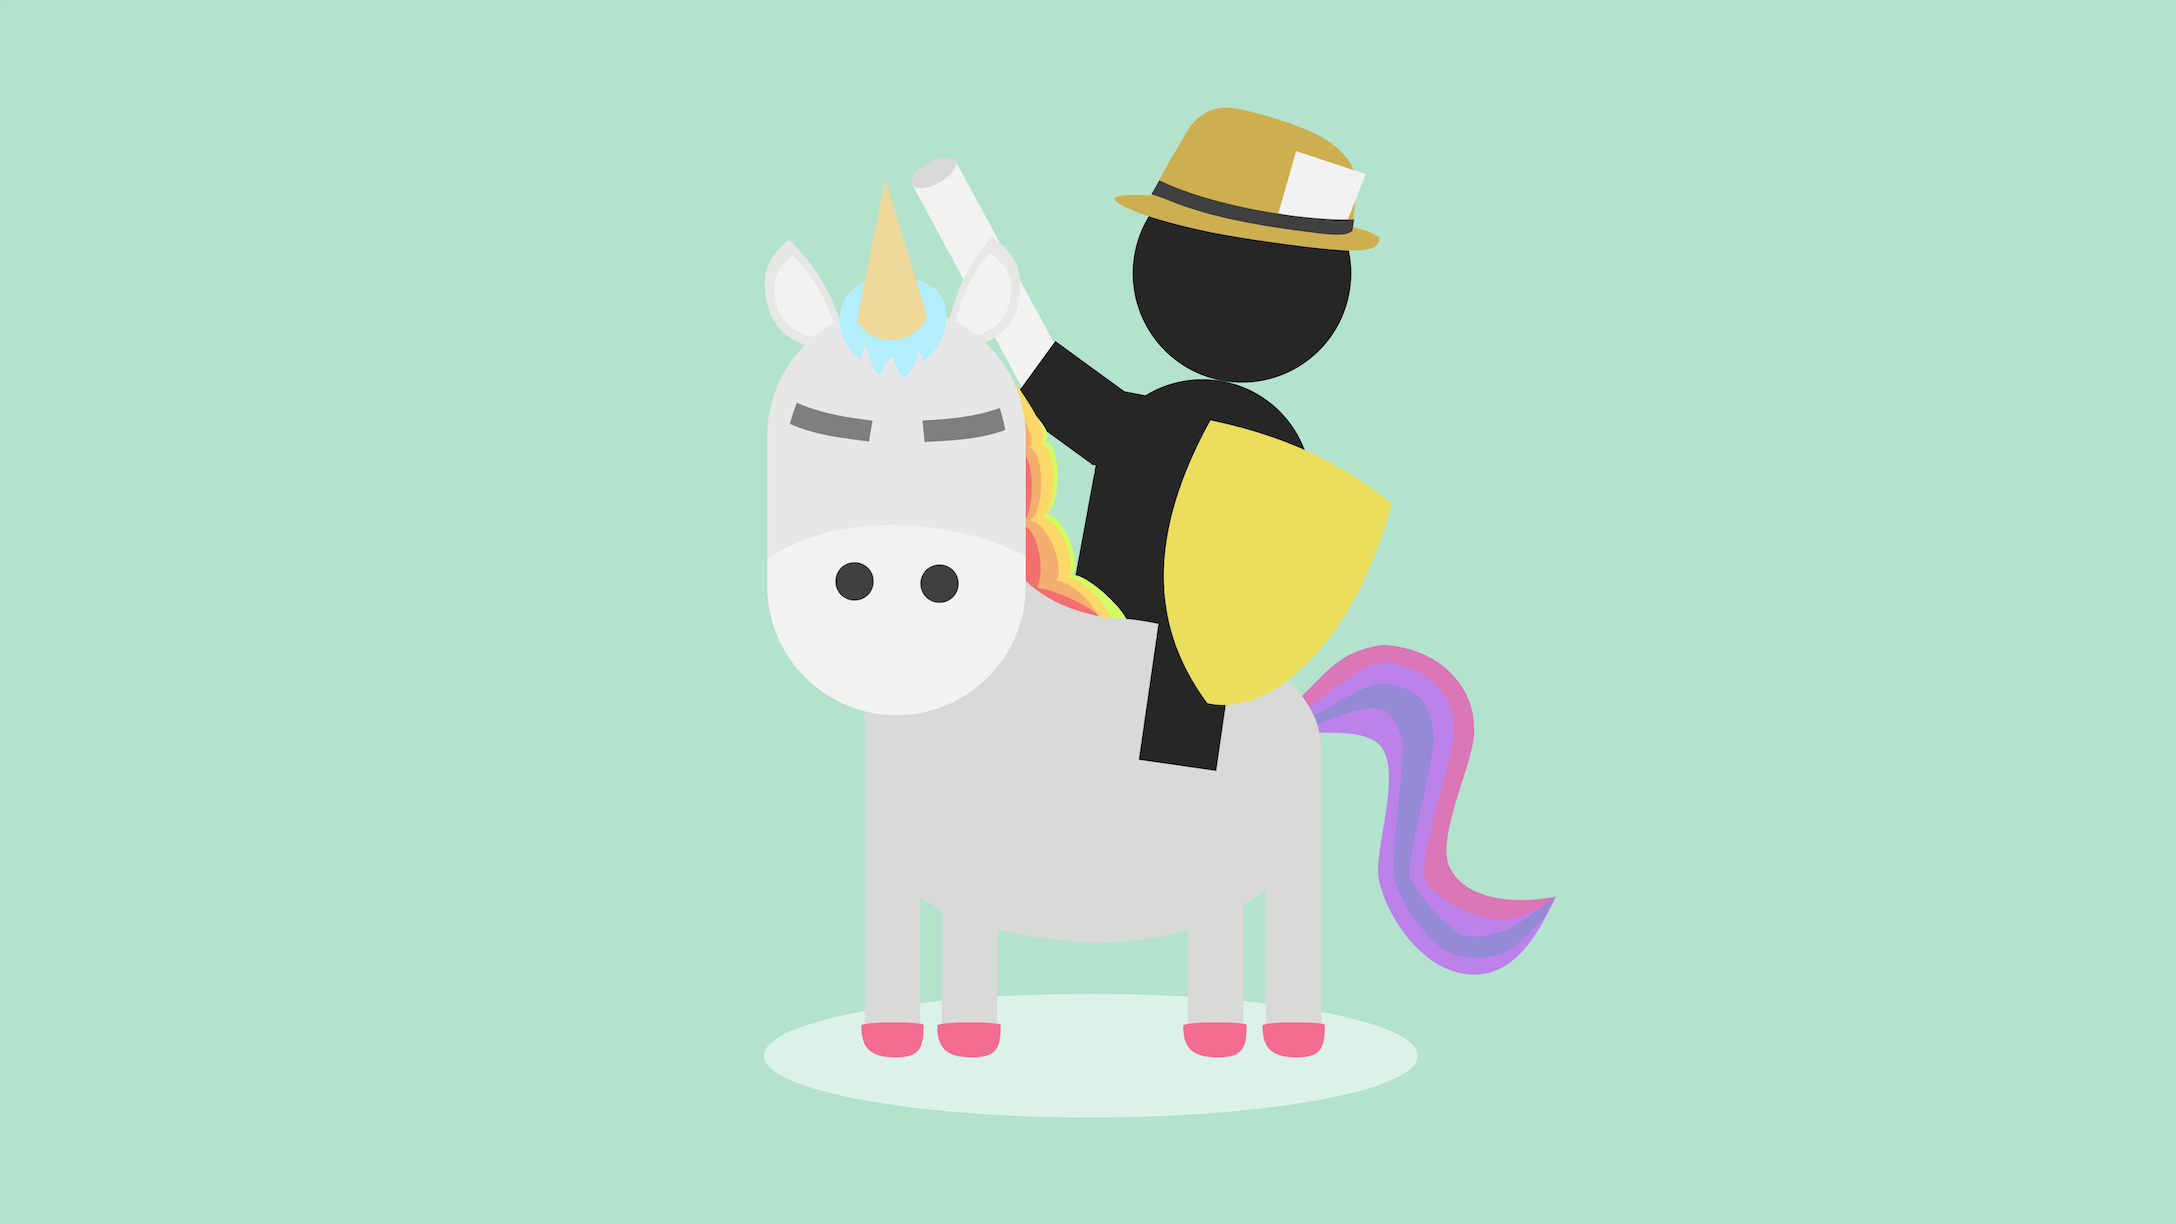 Traditional reporter rides a disgruntled data unicorn